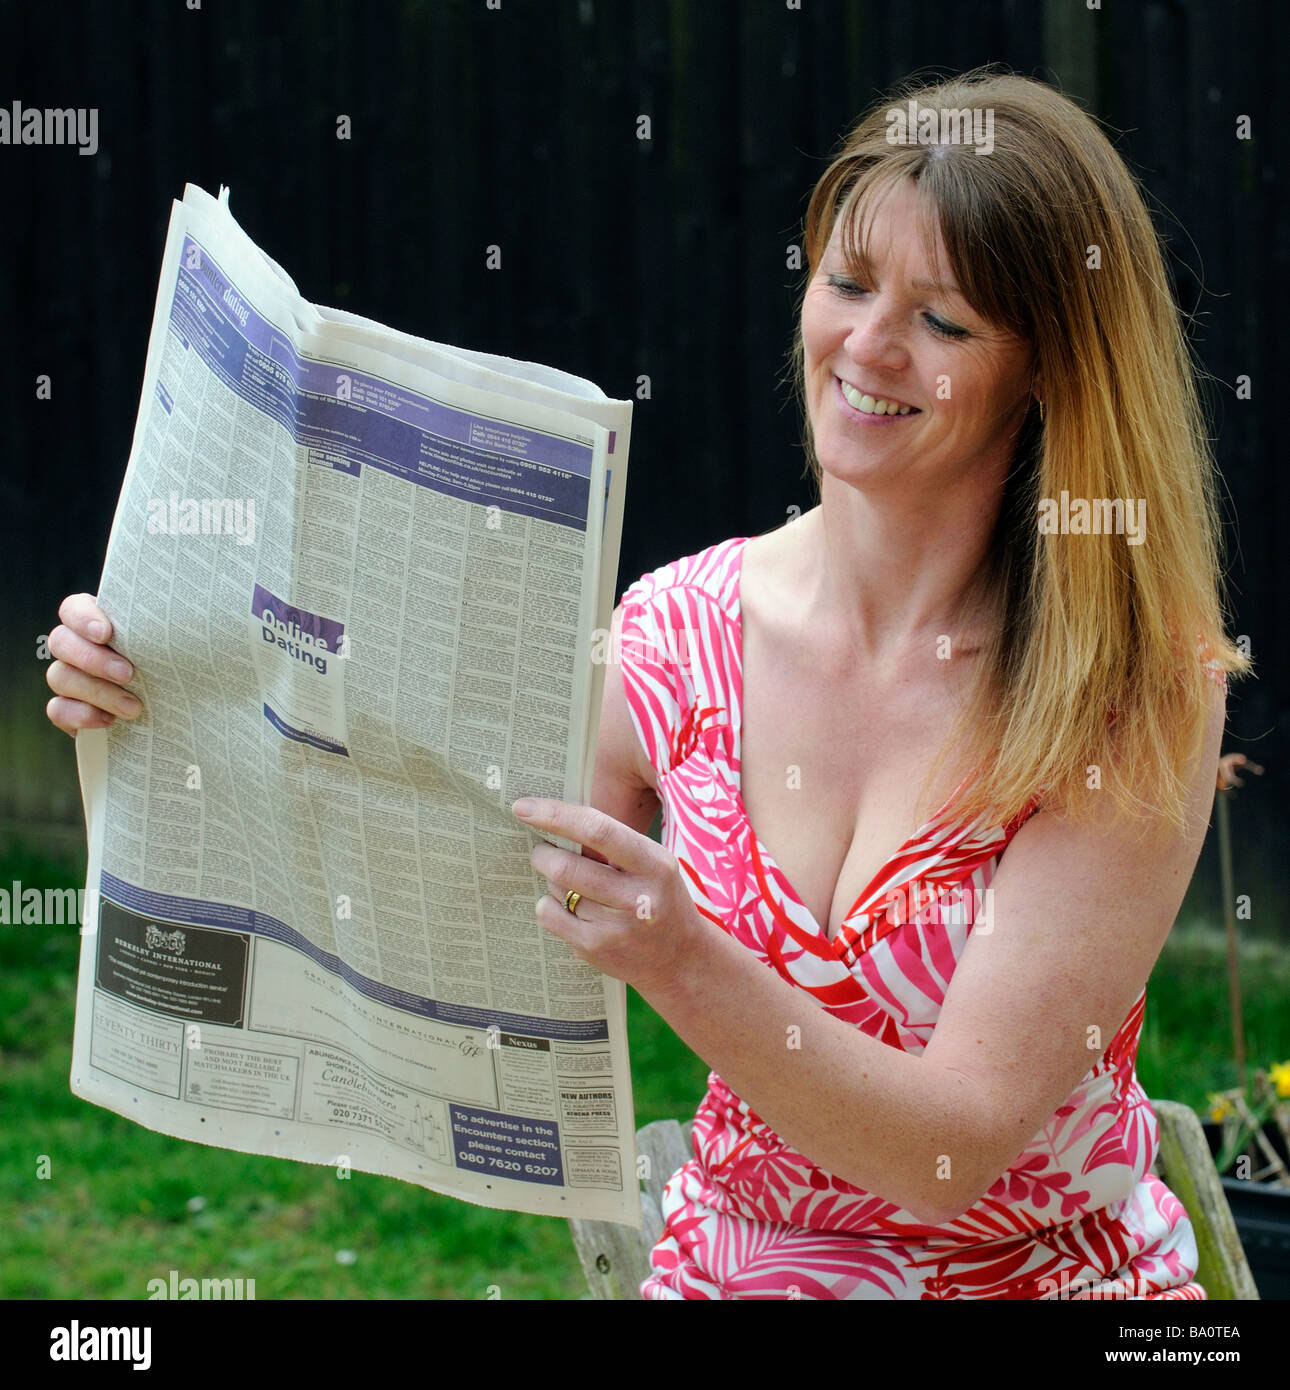 Woman reading small ads in newspaper - Stock Image